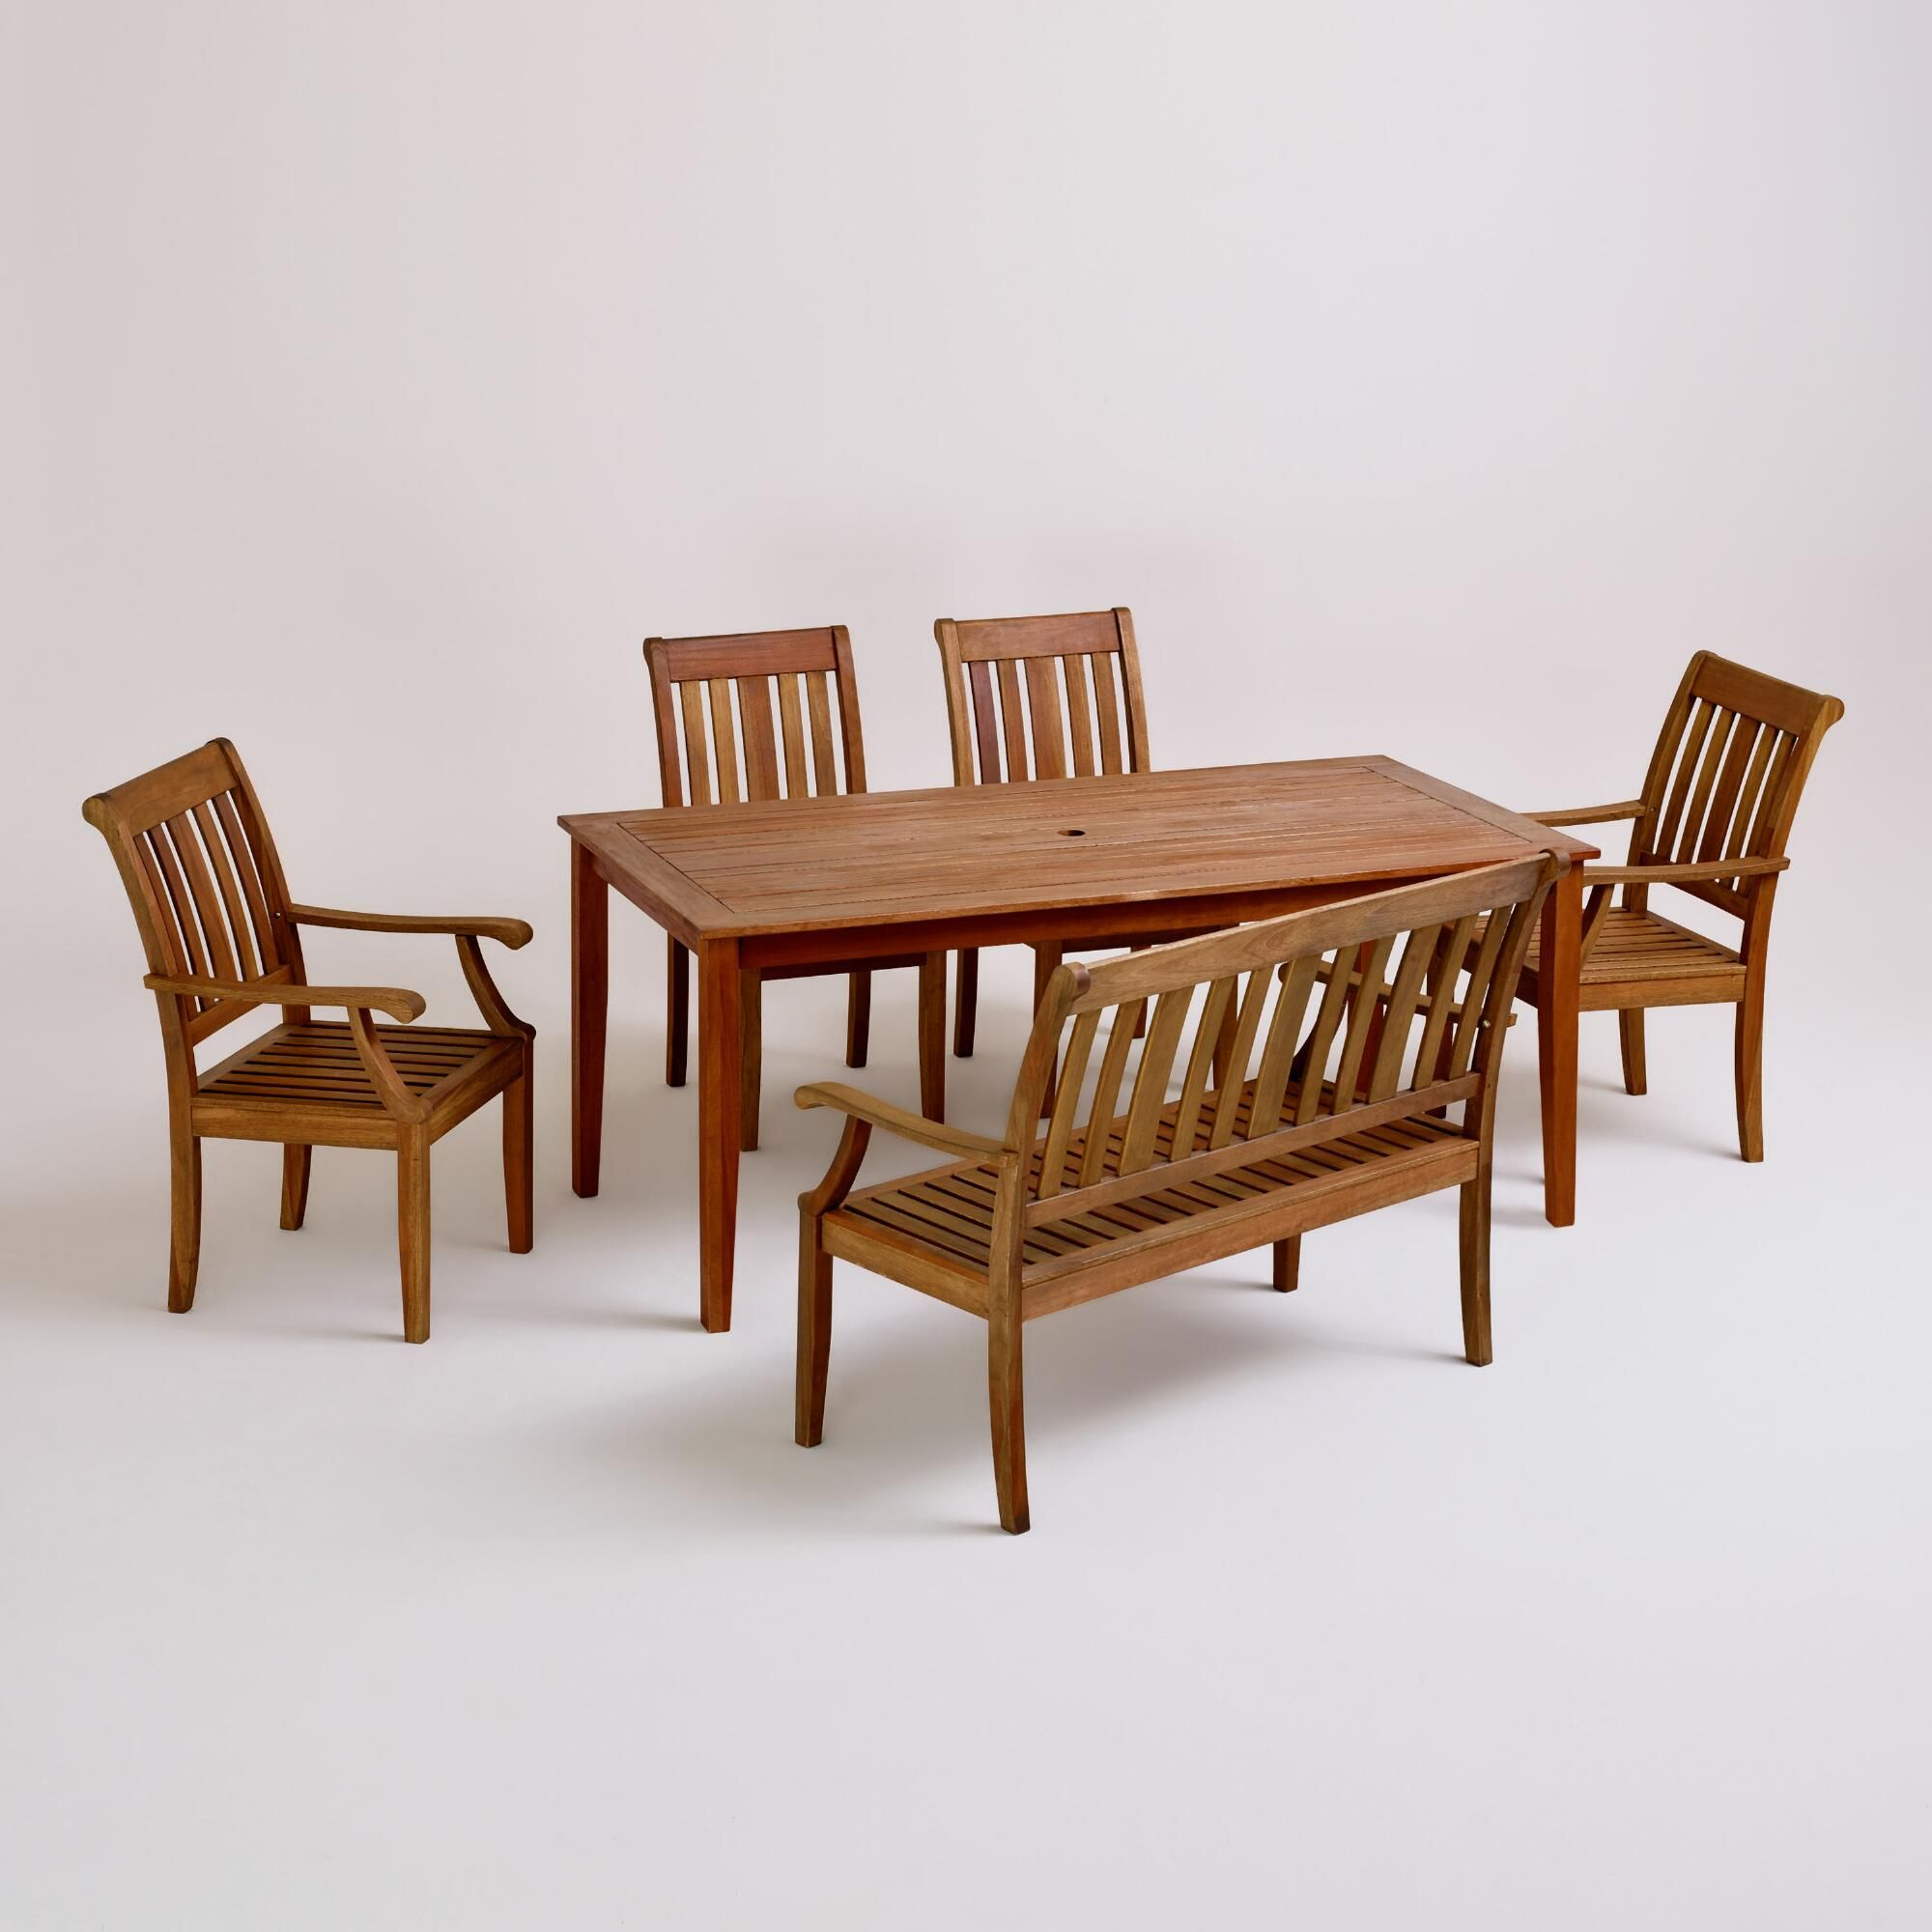 Ordinaire Furniture, Home Decor, Rugs, Unique Gifts